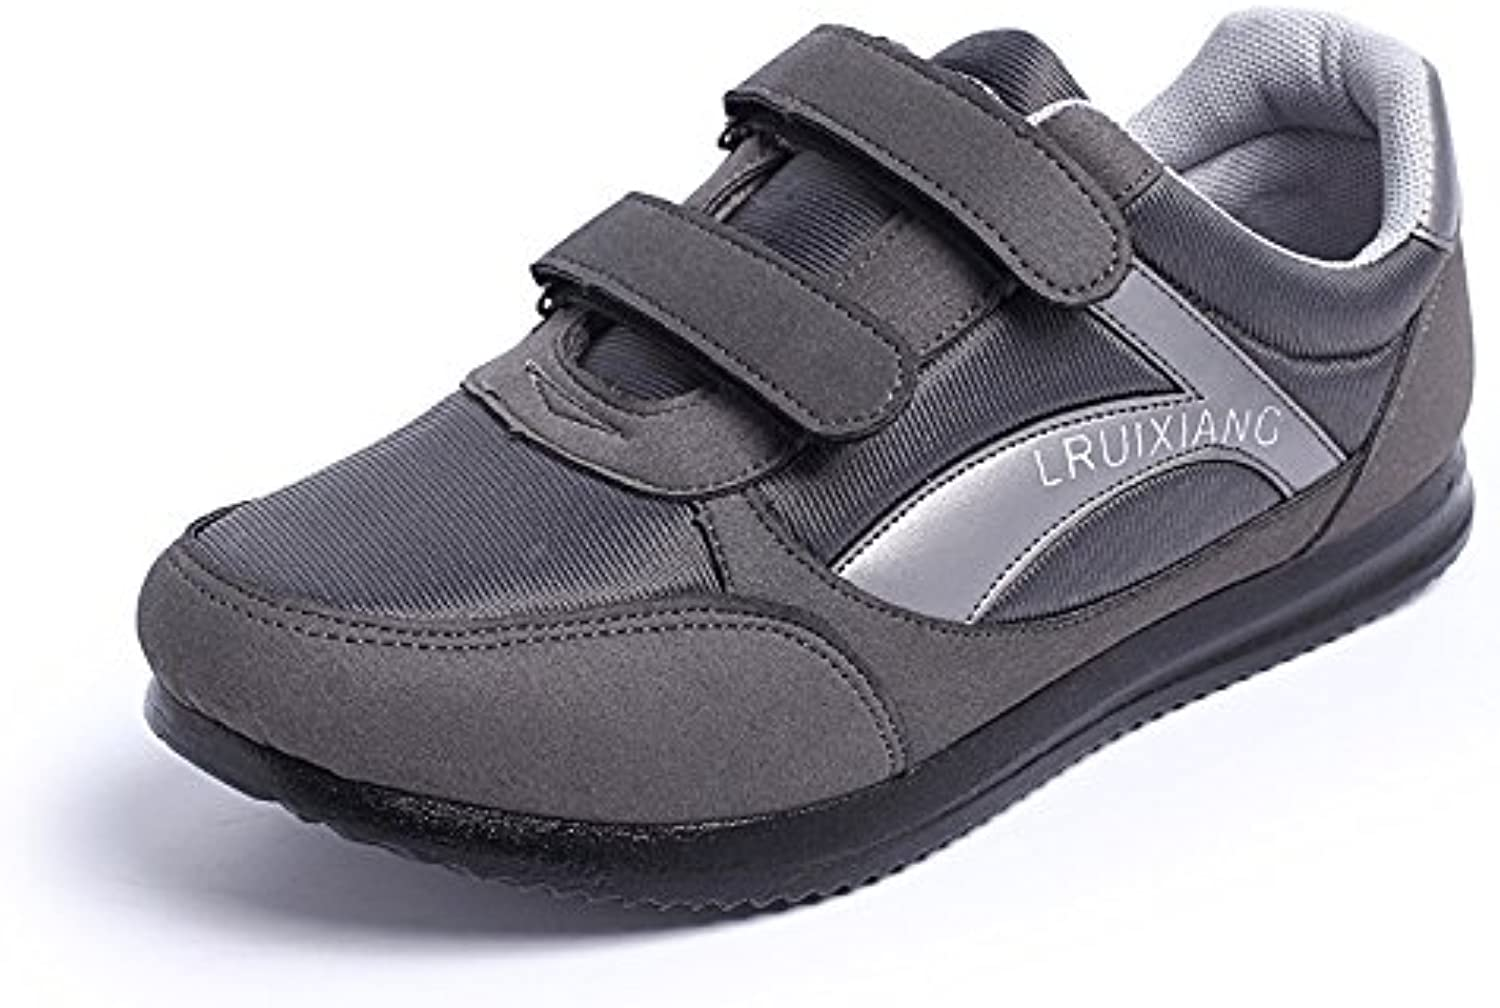 WHW Women shoes Campaign 0858 shoe wear velcro breathable health shoes ,grey,38